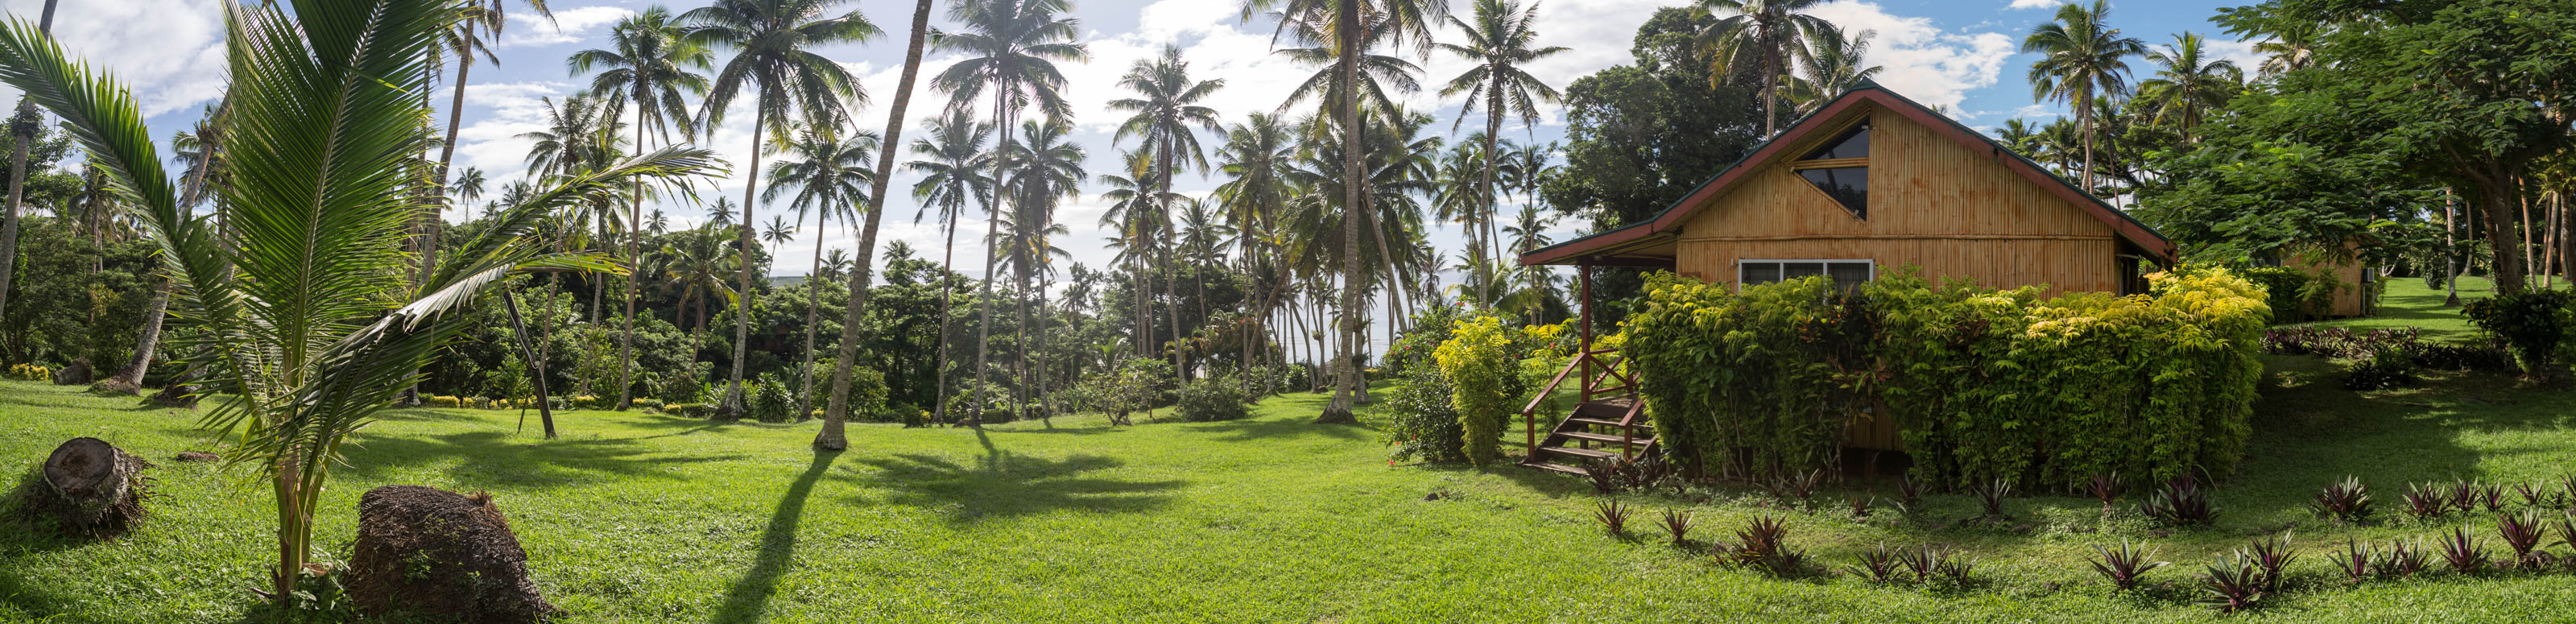 Taveuni Lodge